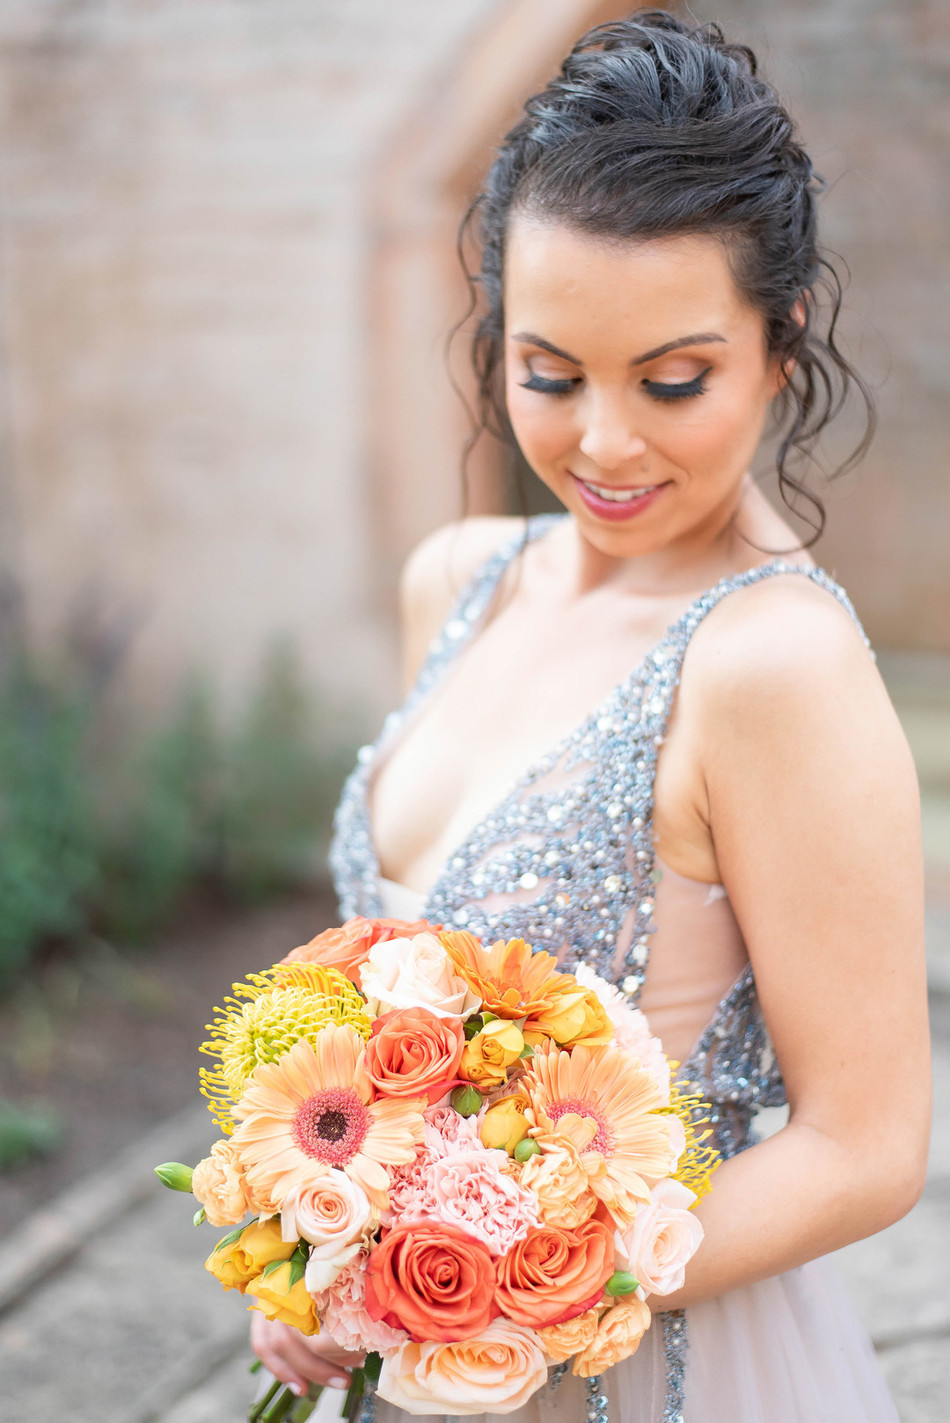 Layers of Luxe |CITRUS GARDEN WHIMSICAL WEDDING